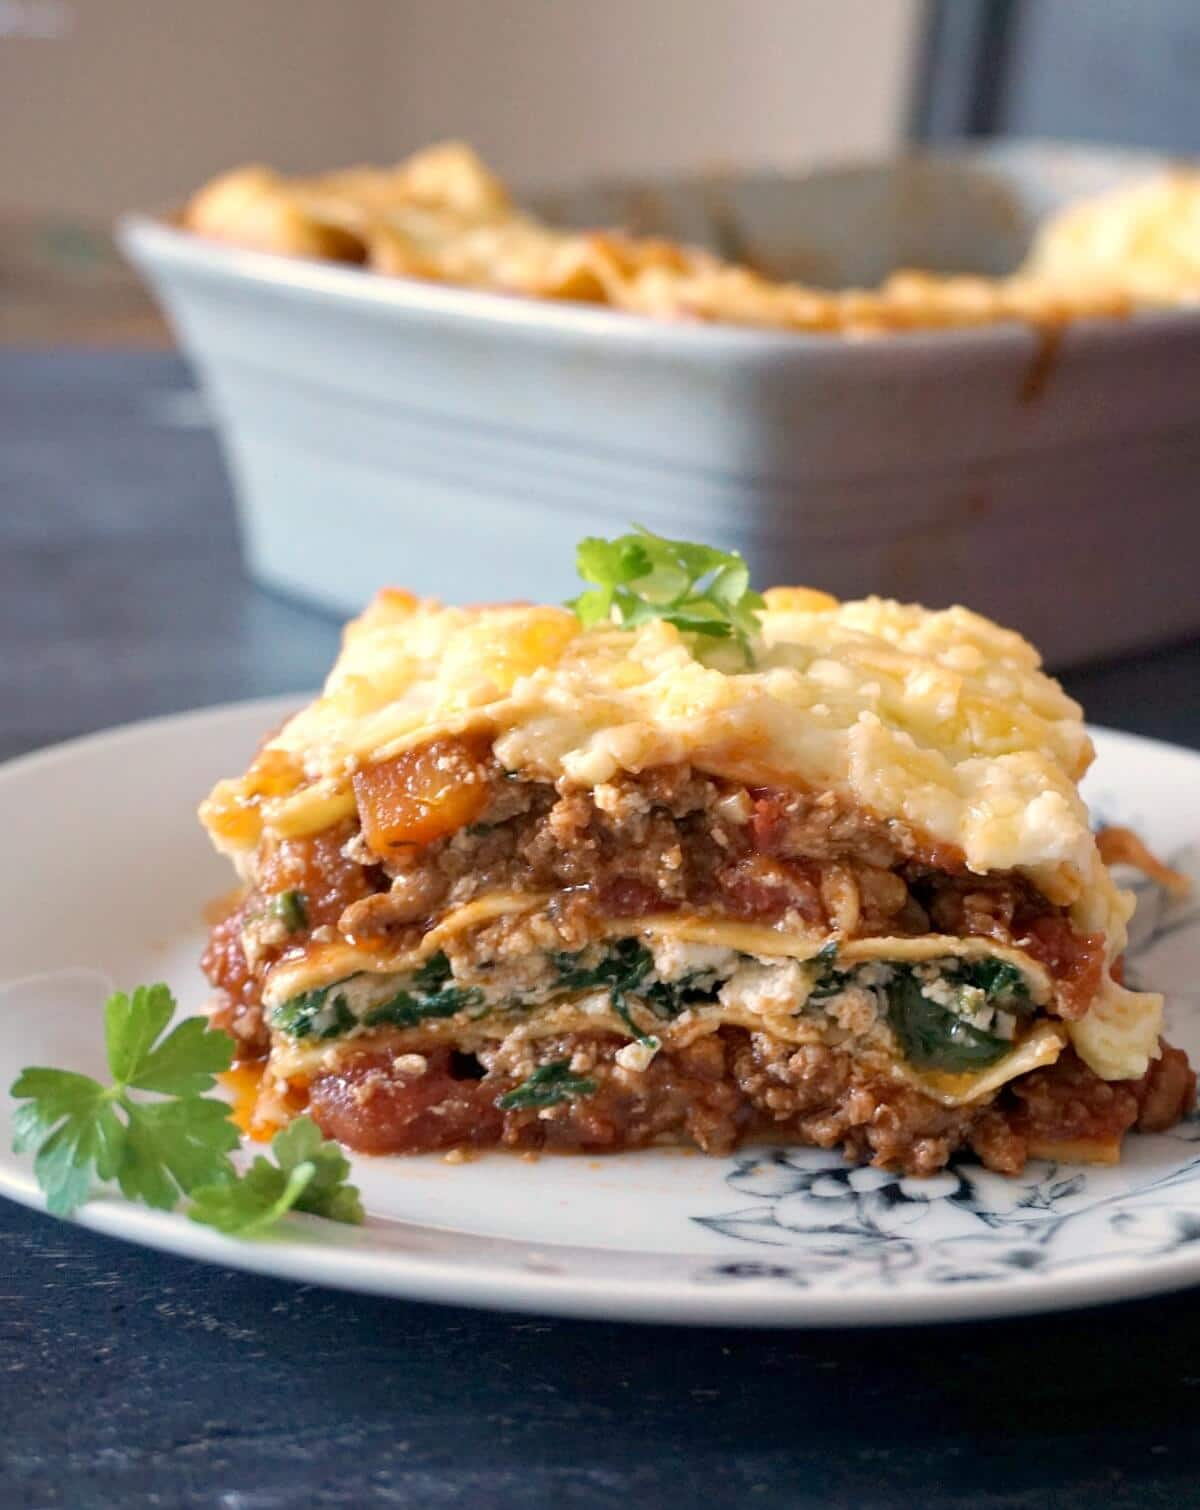 A slice of lasagna on a white plate garnished with fresh parsley leaves